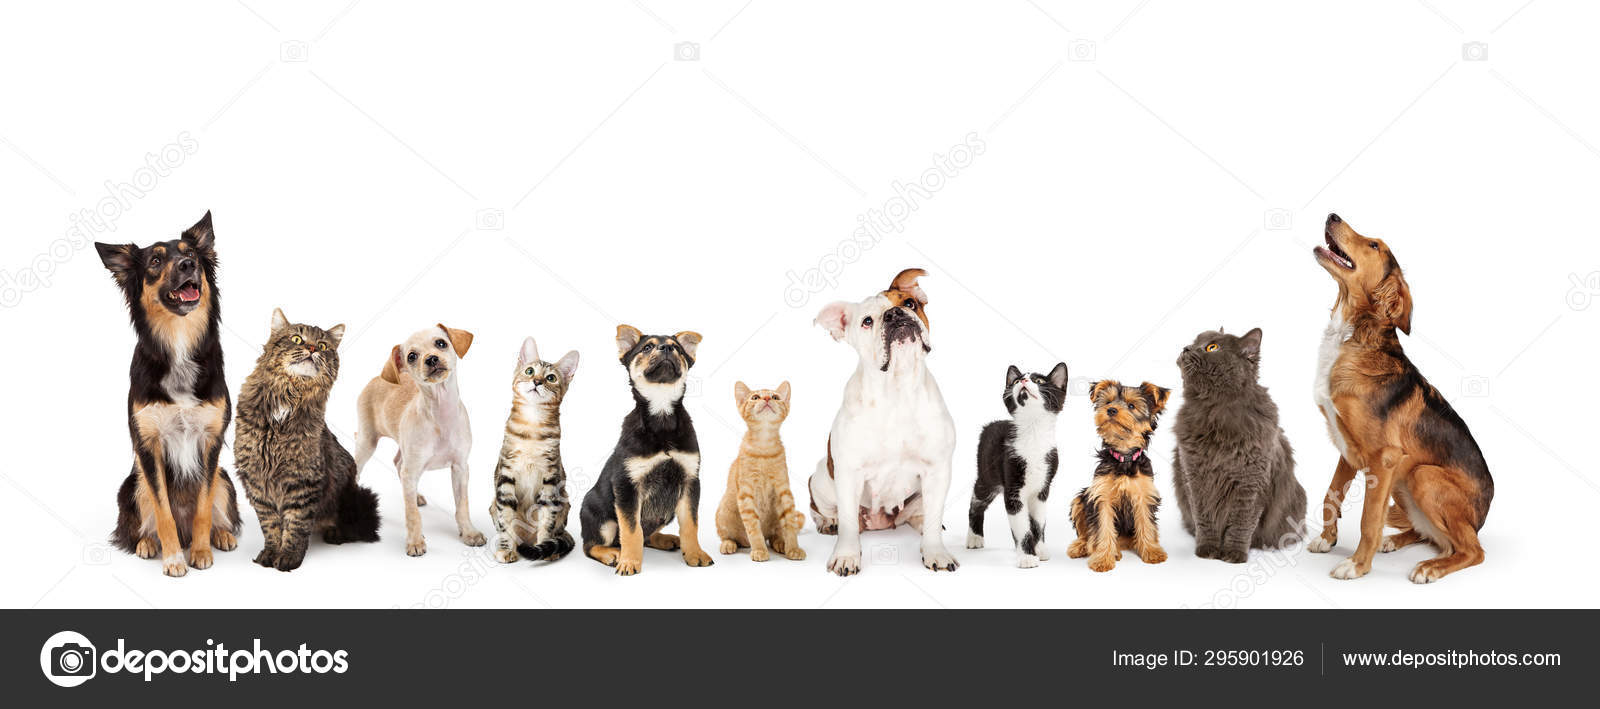 Dogs And Cats Looking Up Into Web Banner Stock Photo C Adogslifephoto 295901926